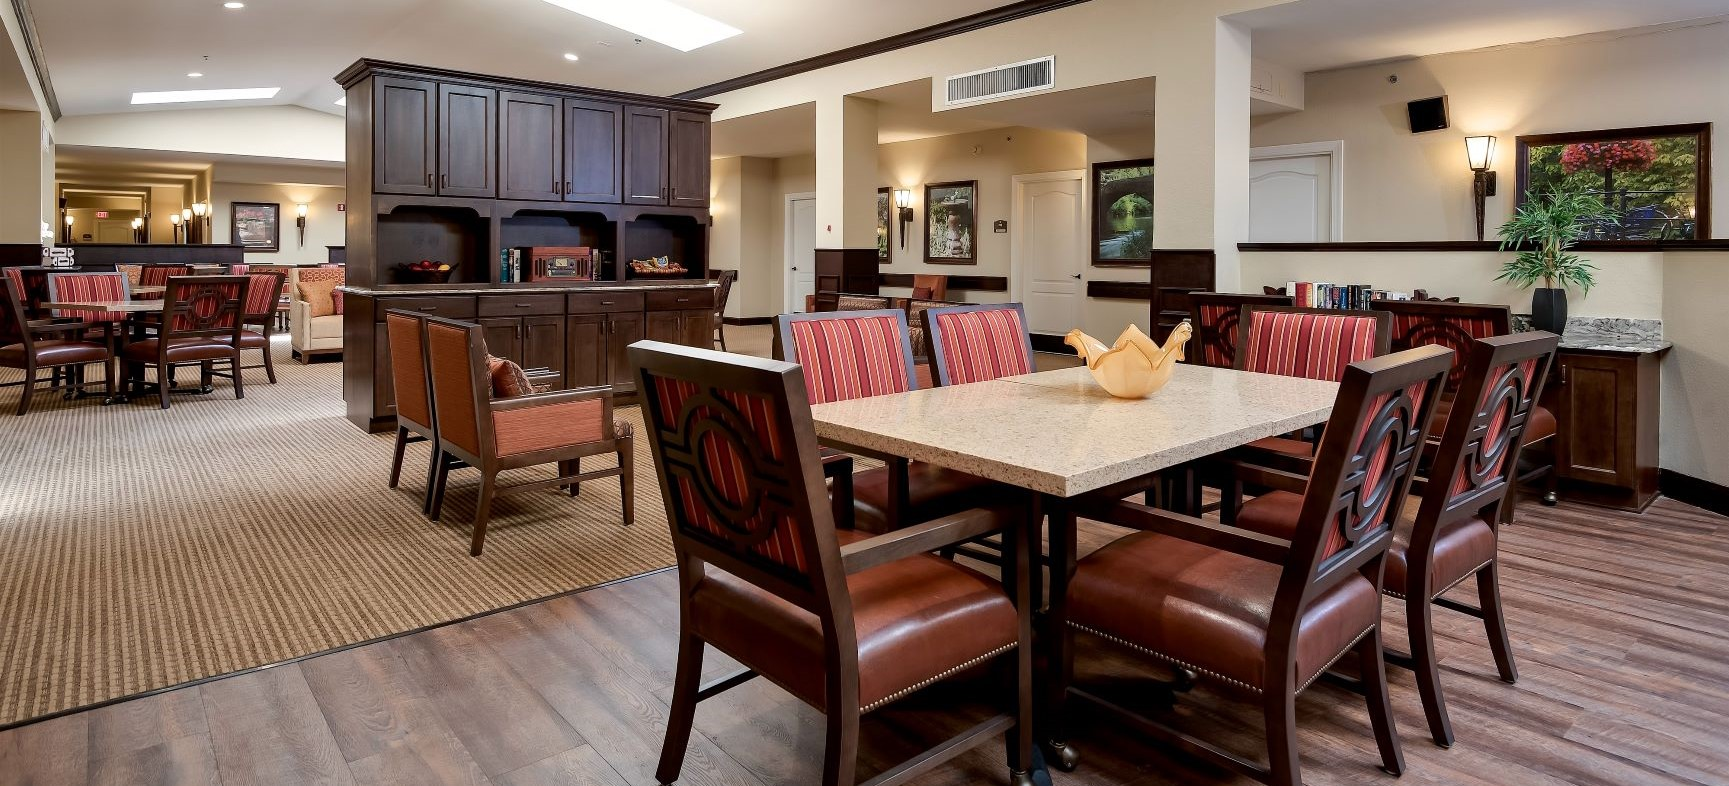 Our lovely group dining room at Pacifica Senior Living Ocala.